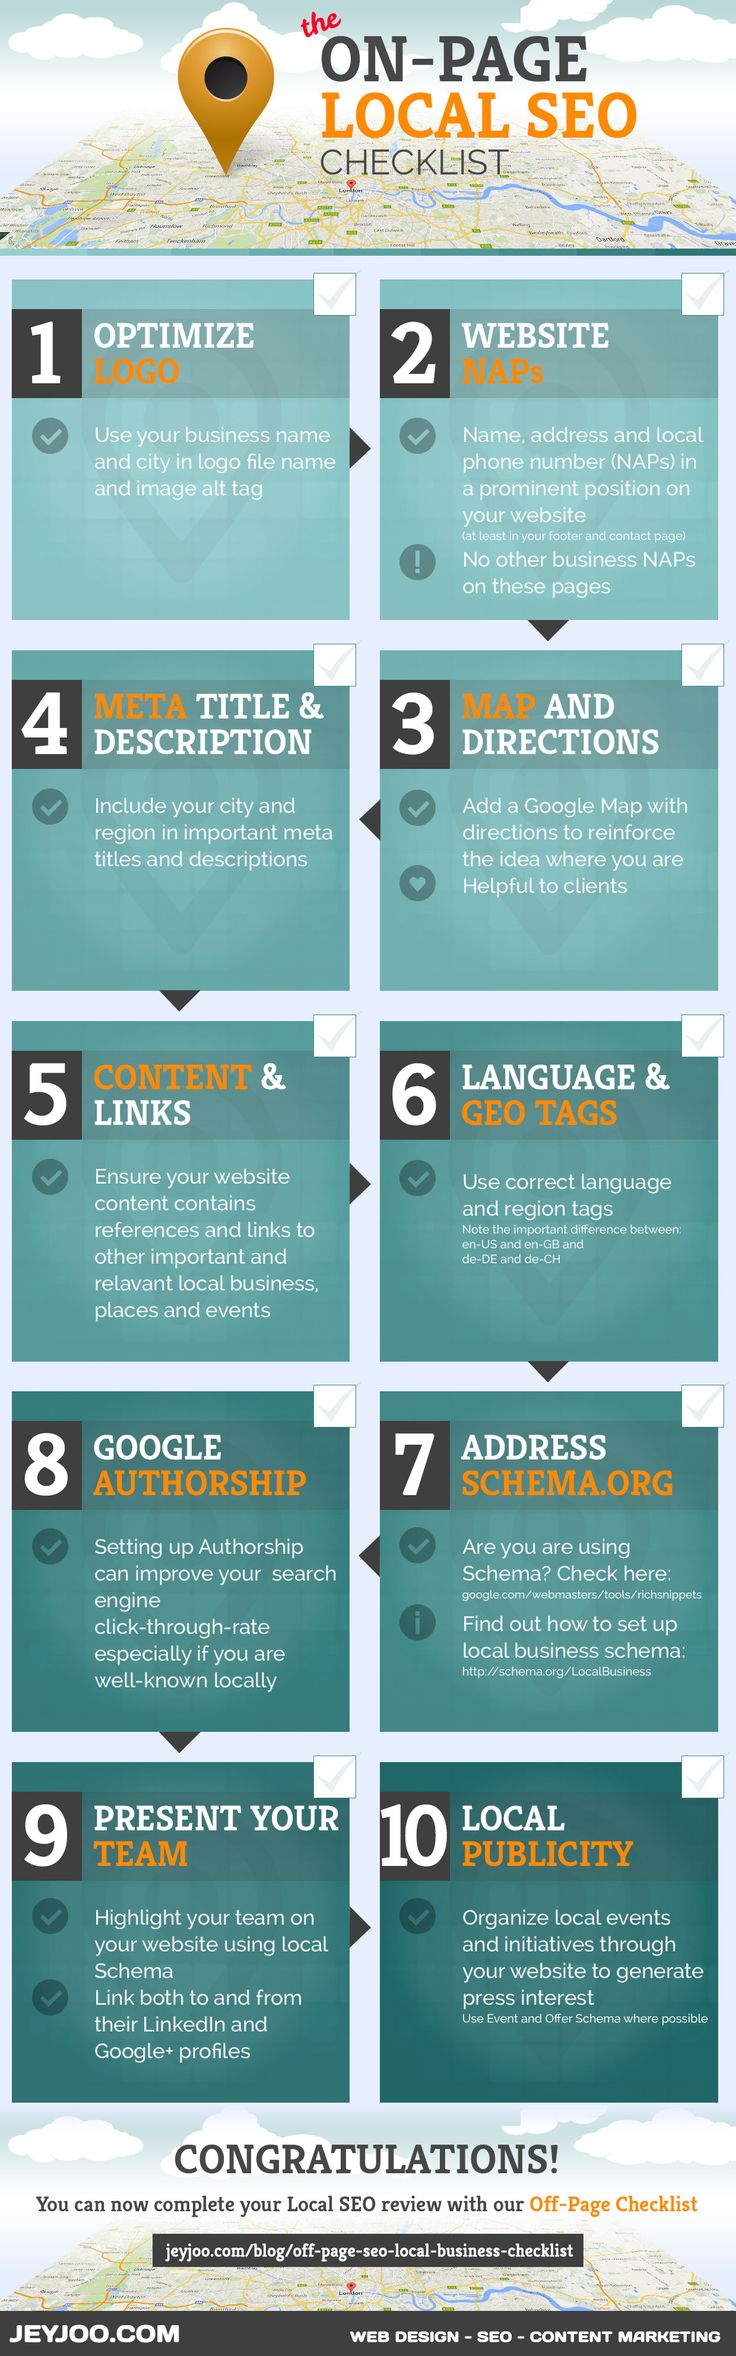 Advertising-Infographics-On-Page-Local-SEO-10-Tips-To-Improve-Your-Local-SEO-Infographic-localseo-go Advertising Infographics : On-Page Local SEO: 10 Tips To Improve Your Local SEO [Infographic] #localseo #go...